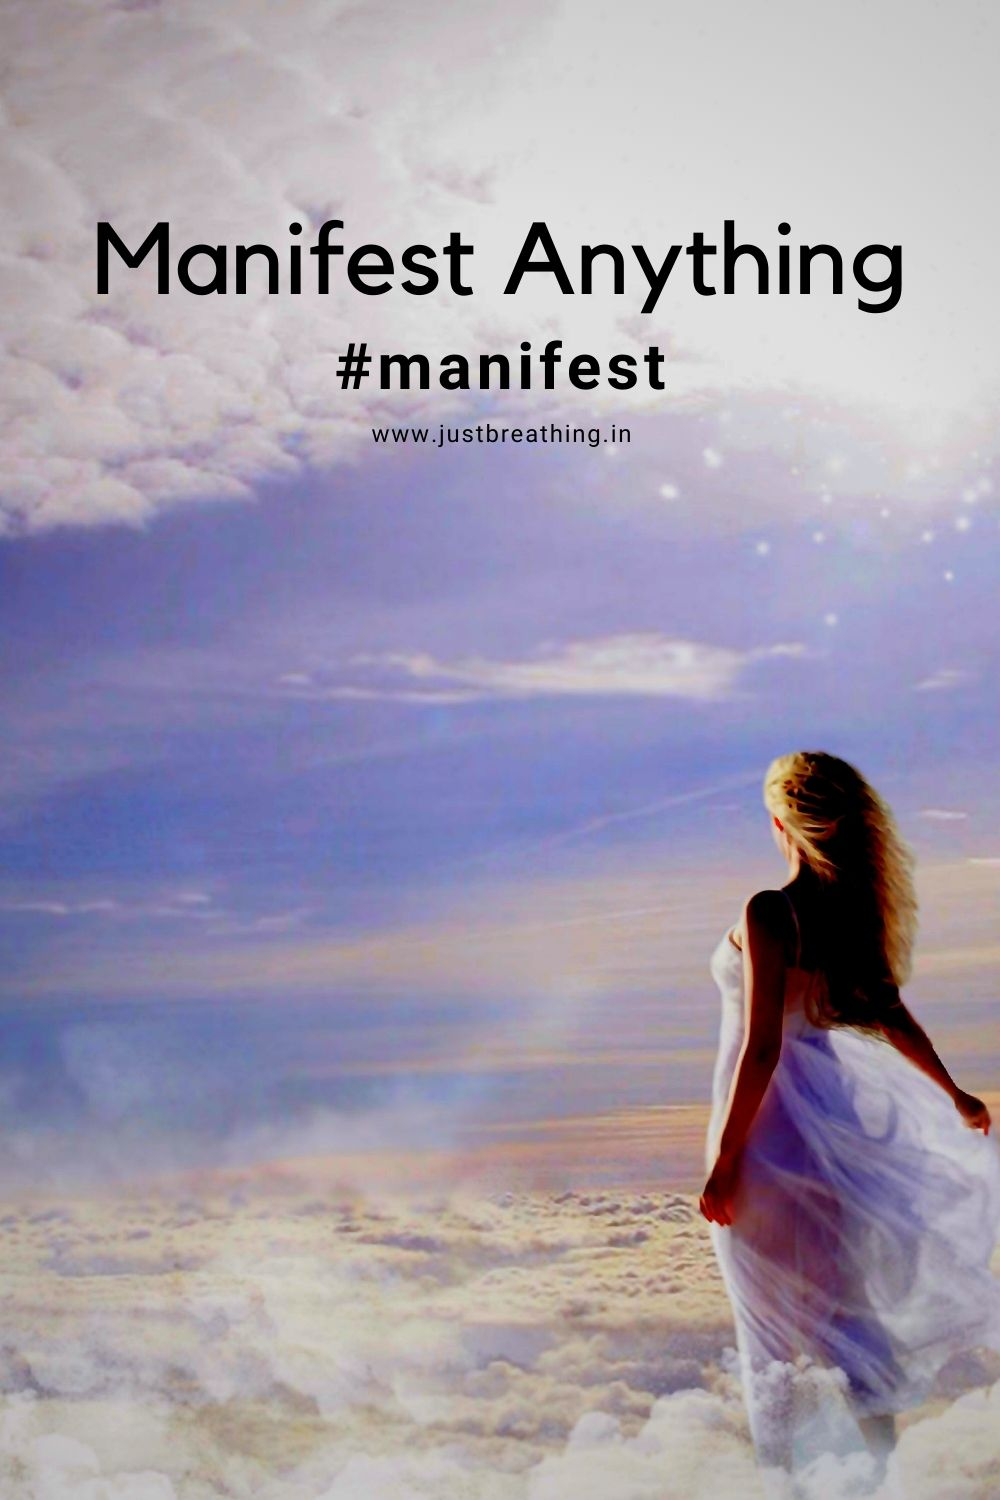 Best hashtags of manifest anything in your life best hashtags for manifestation Posts.